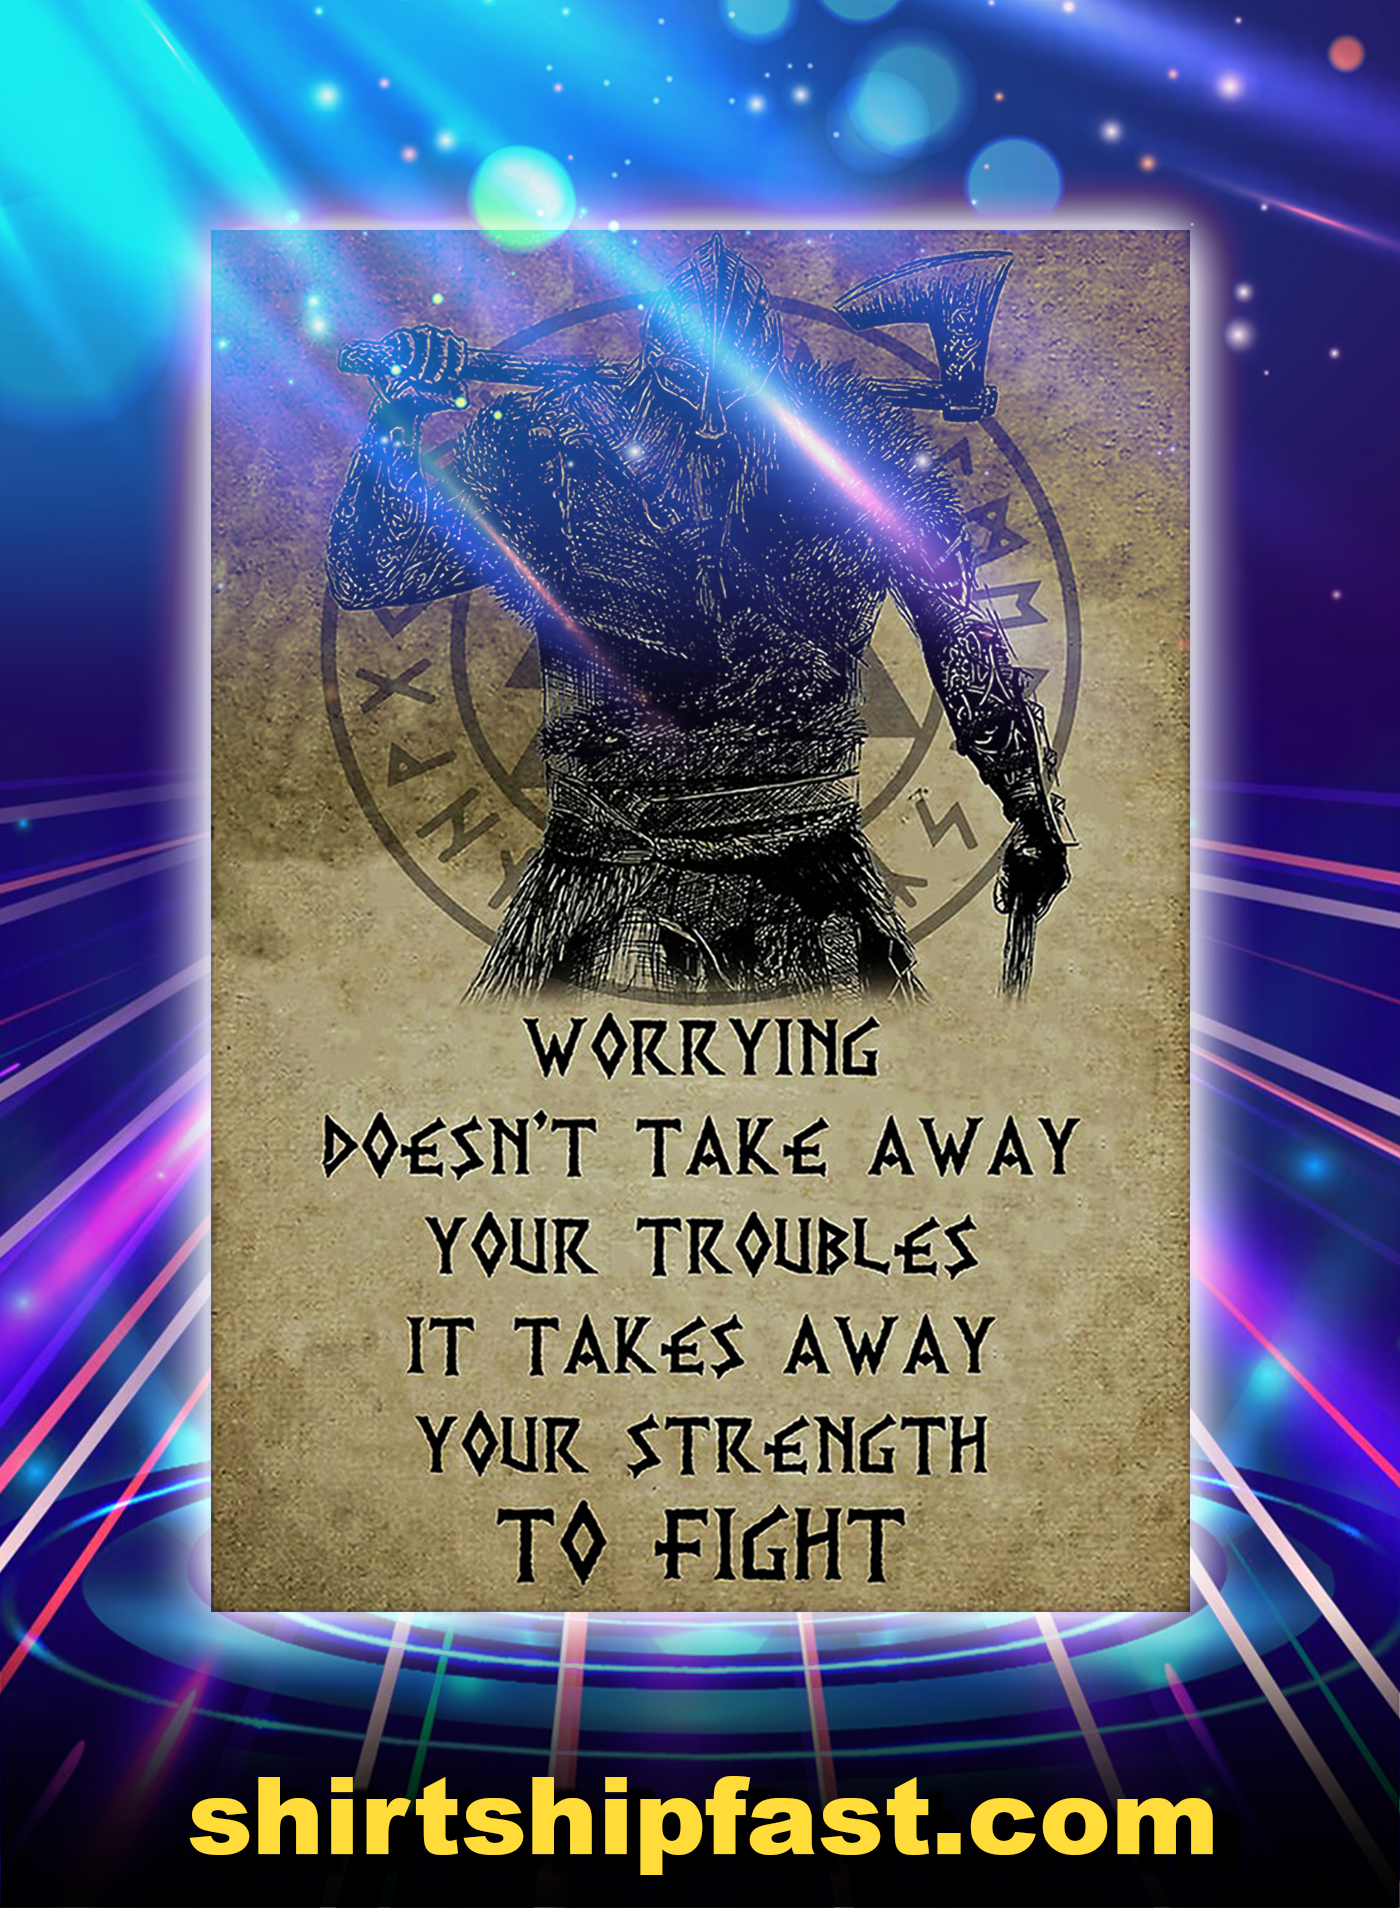 Viking Worrying Doesn't Take Away Your Troubles It Takes Away Your Strength To Fight Poster - A1